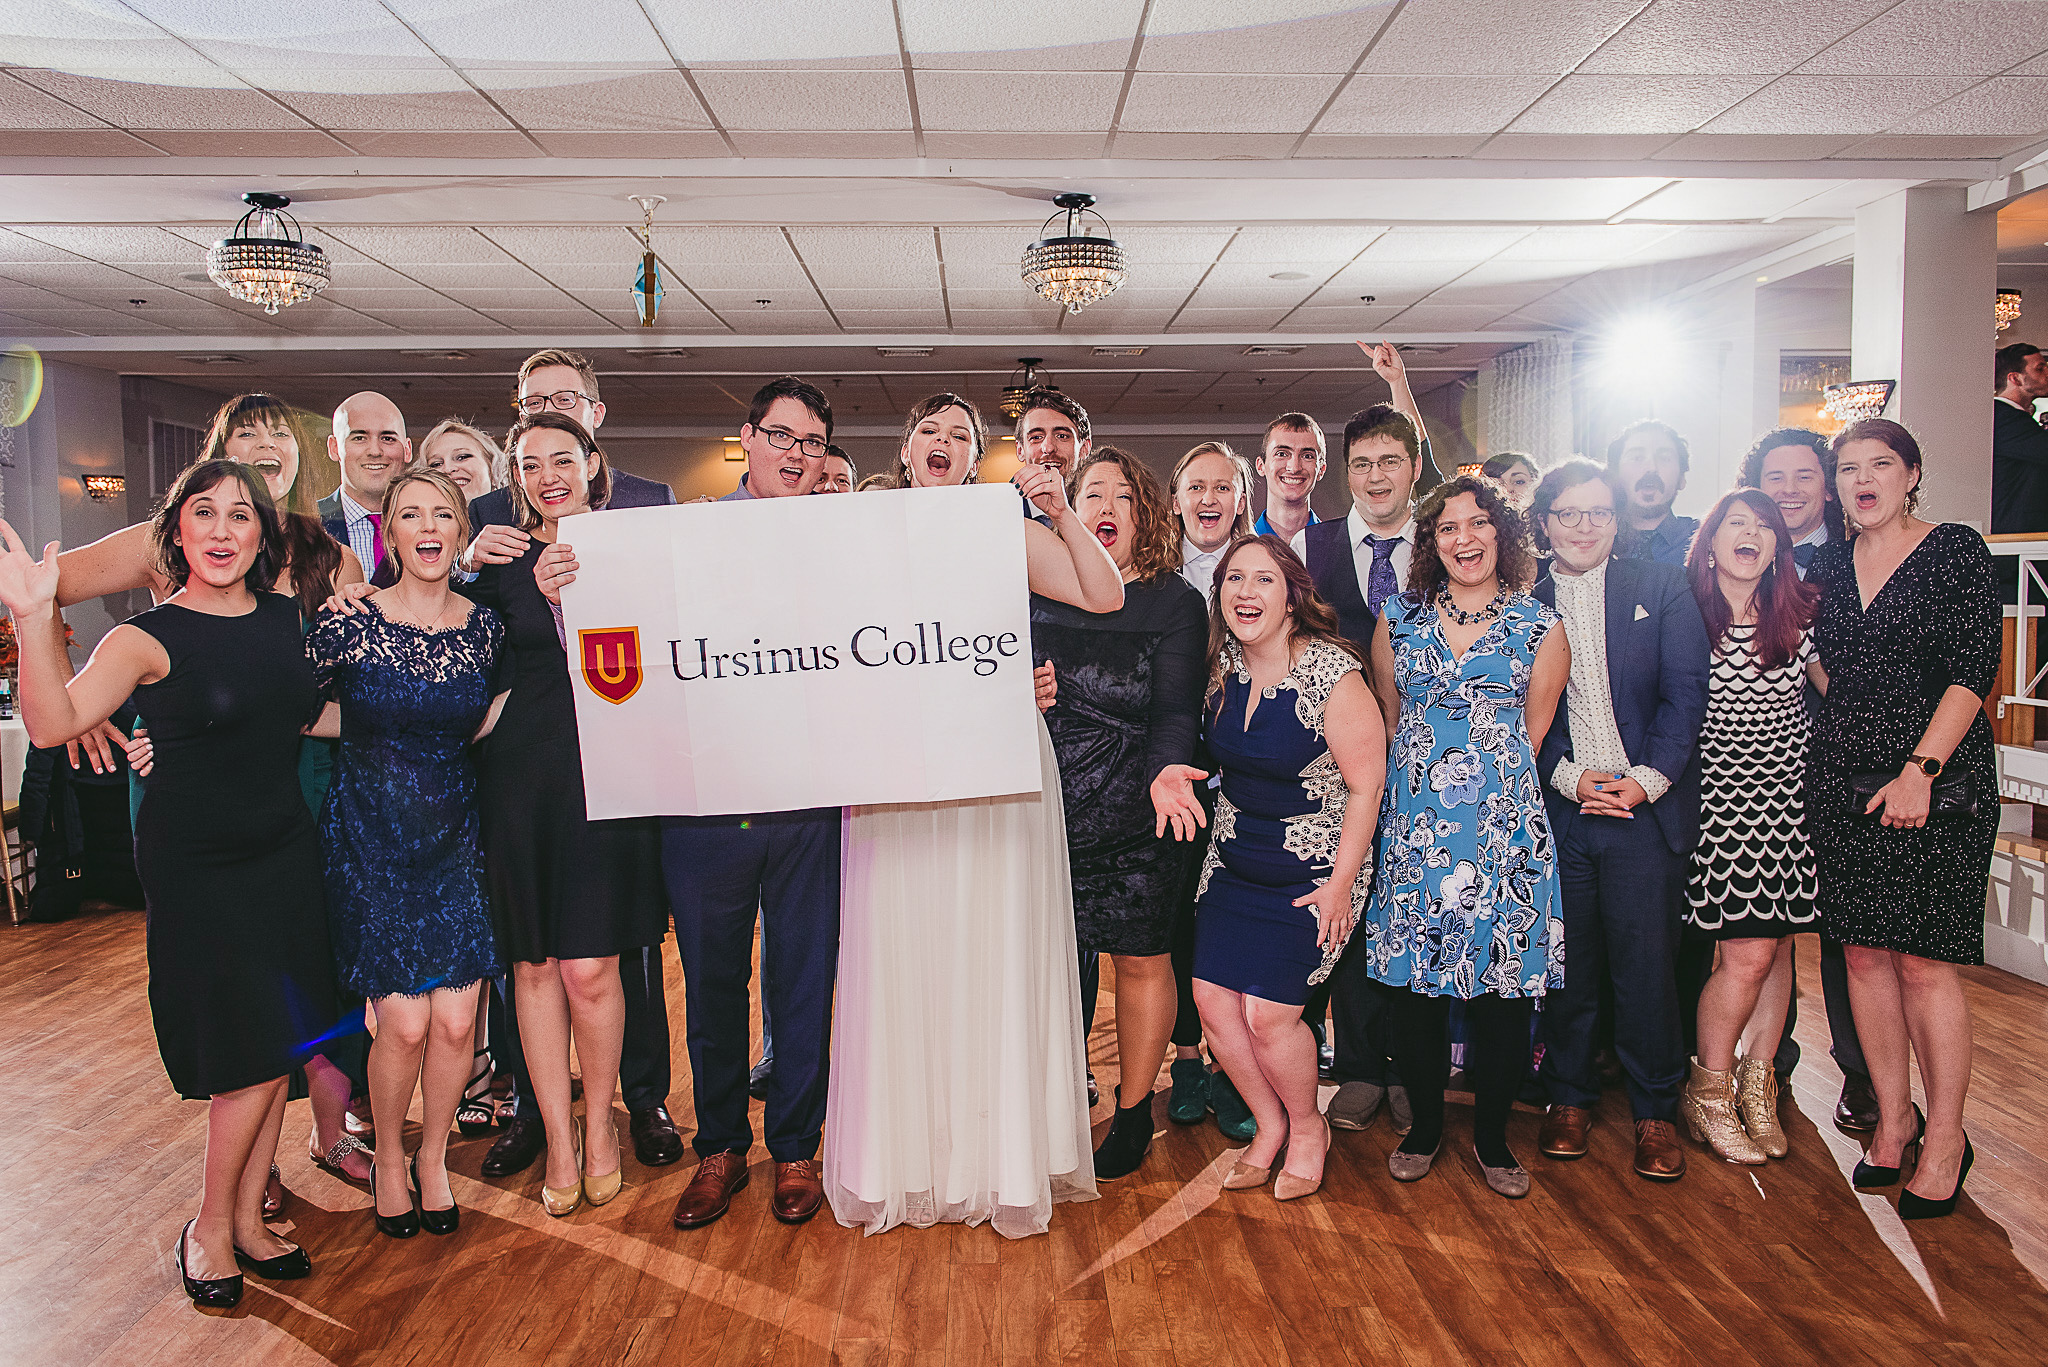 Jessica McIlhenny '11 and Grey Johnson '09 were married November 2, 2018.